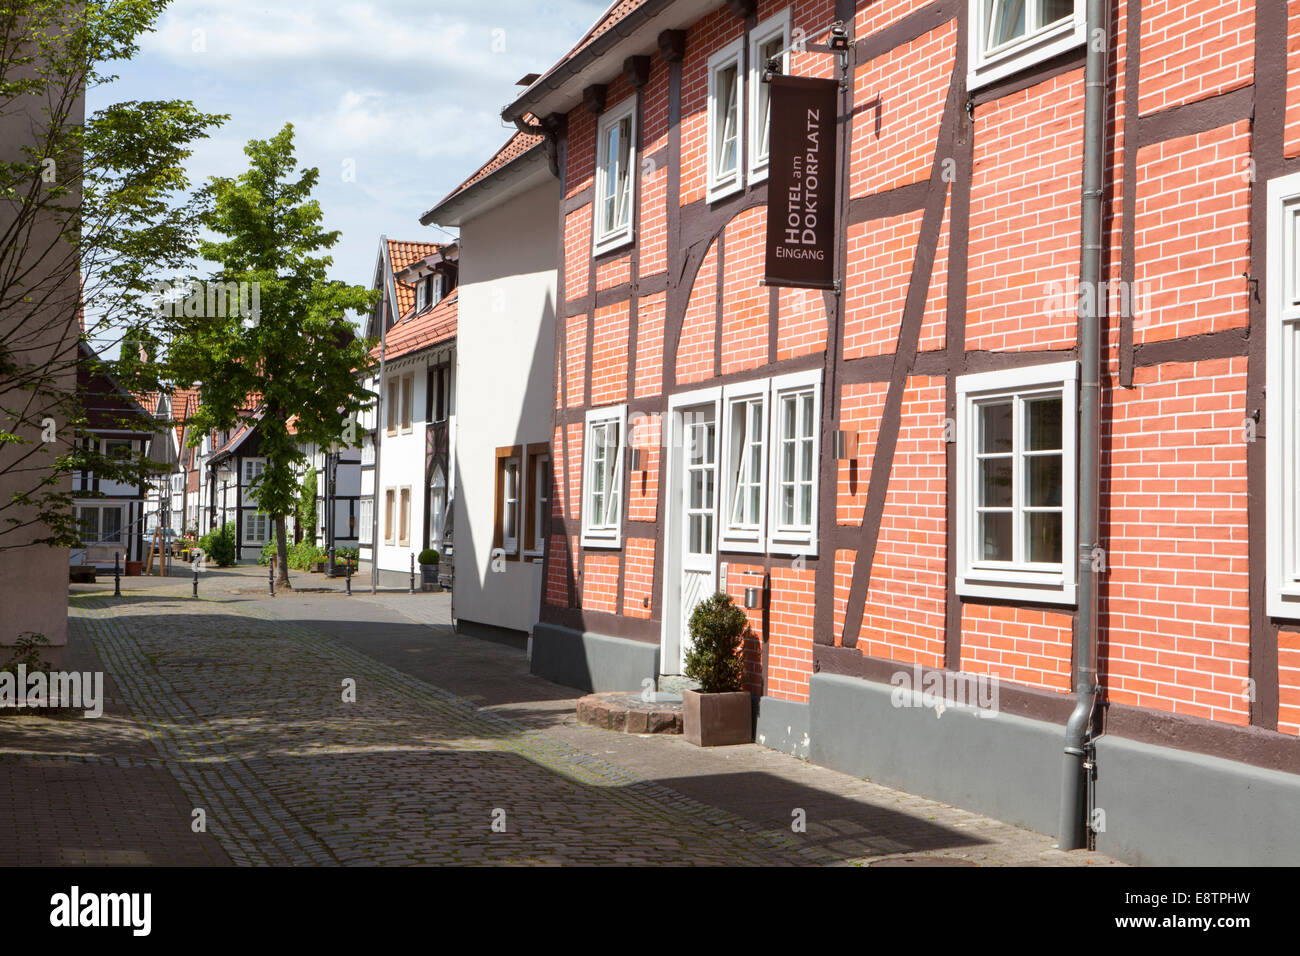 Half-timbered houses in the historic town, Rheda, Rheda-Wiedenbrueck, Germany, Europe - Stock Image